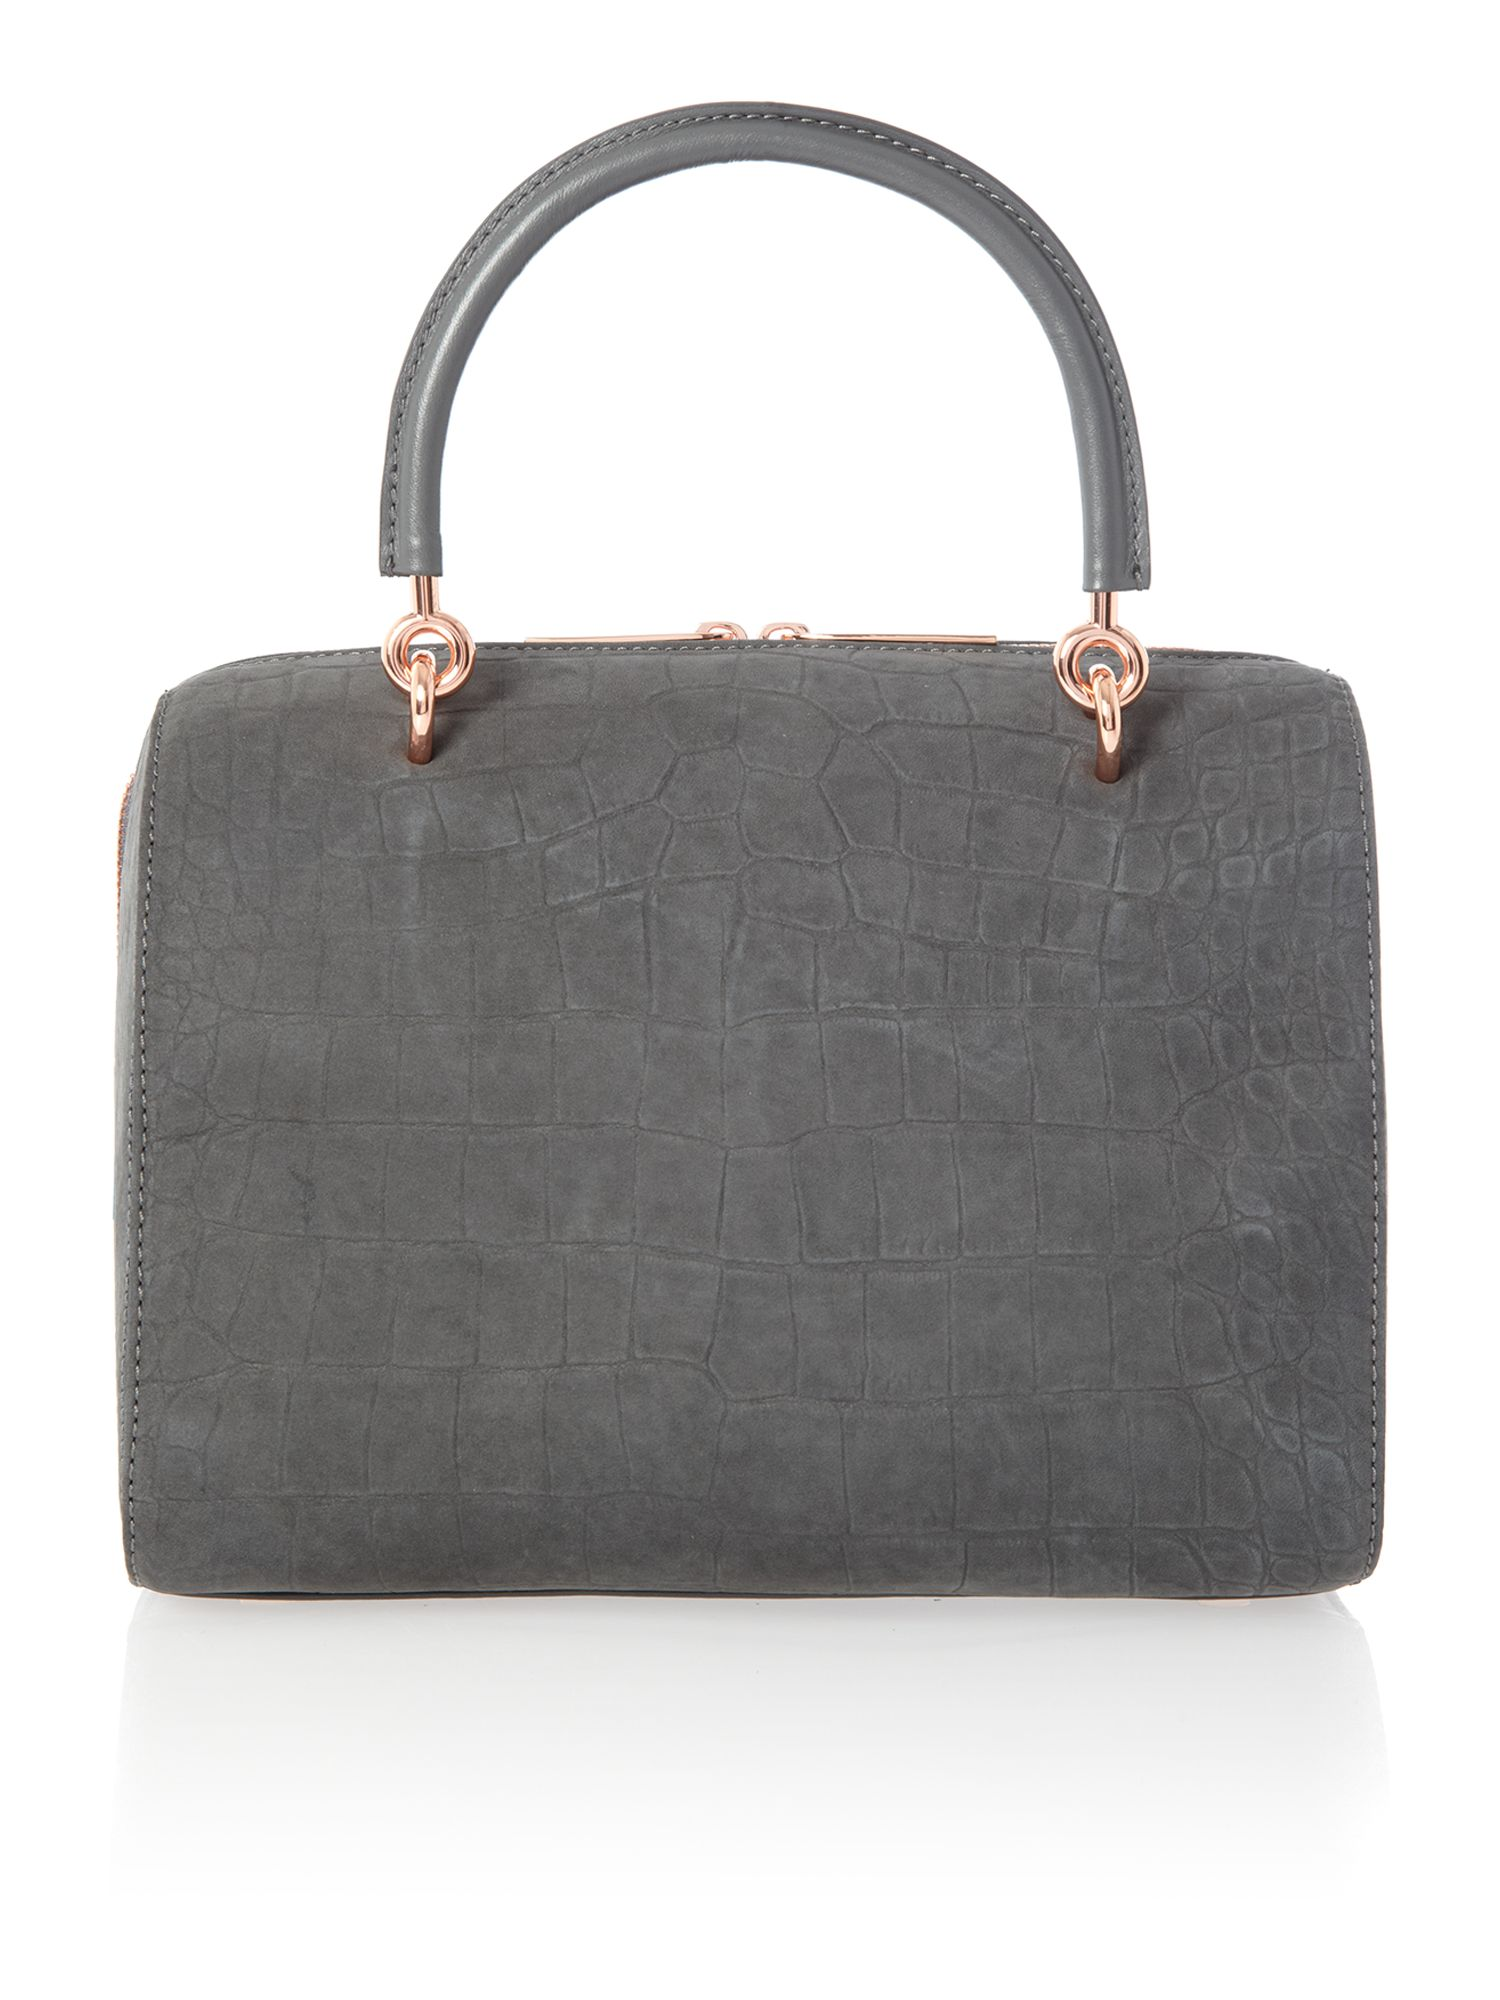 Grey croc bowling bag with clutch